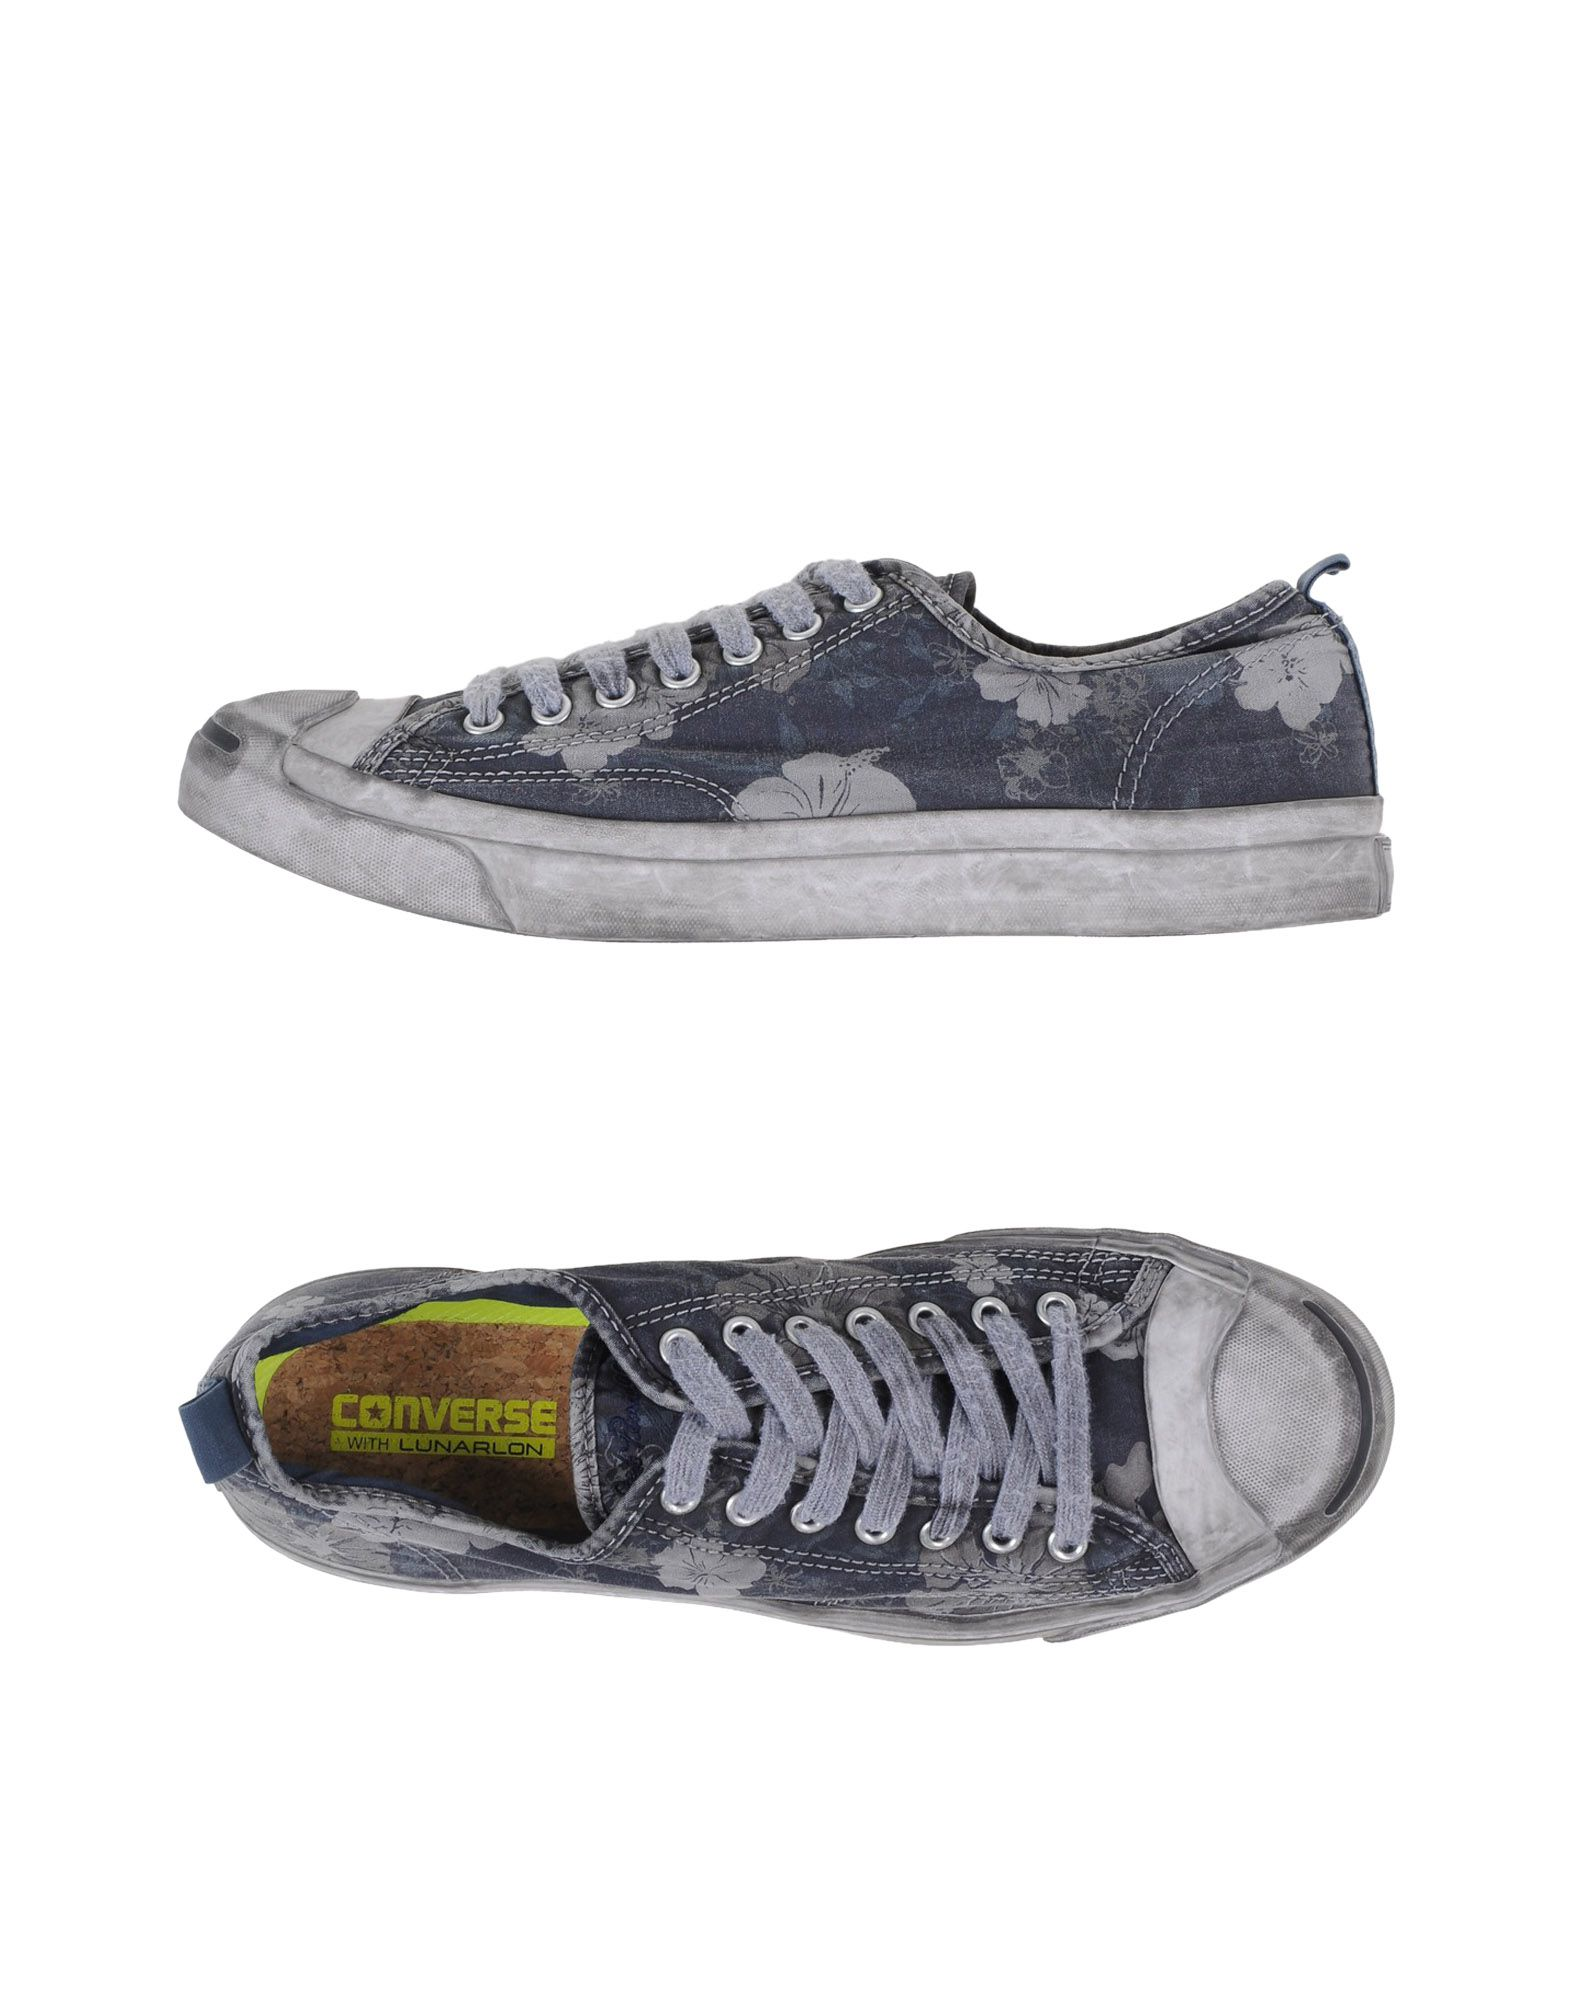 Sneakers Converse Limited Edition Jp Ltt Ox Canvas Ltd - Homme - Sneakers Converse Limited Edition sur